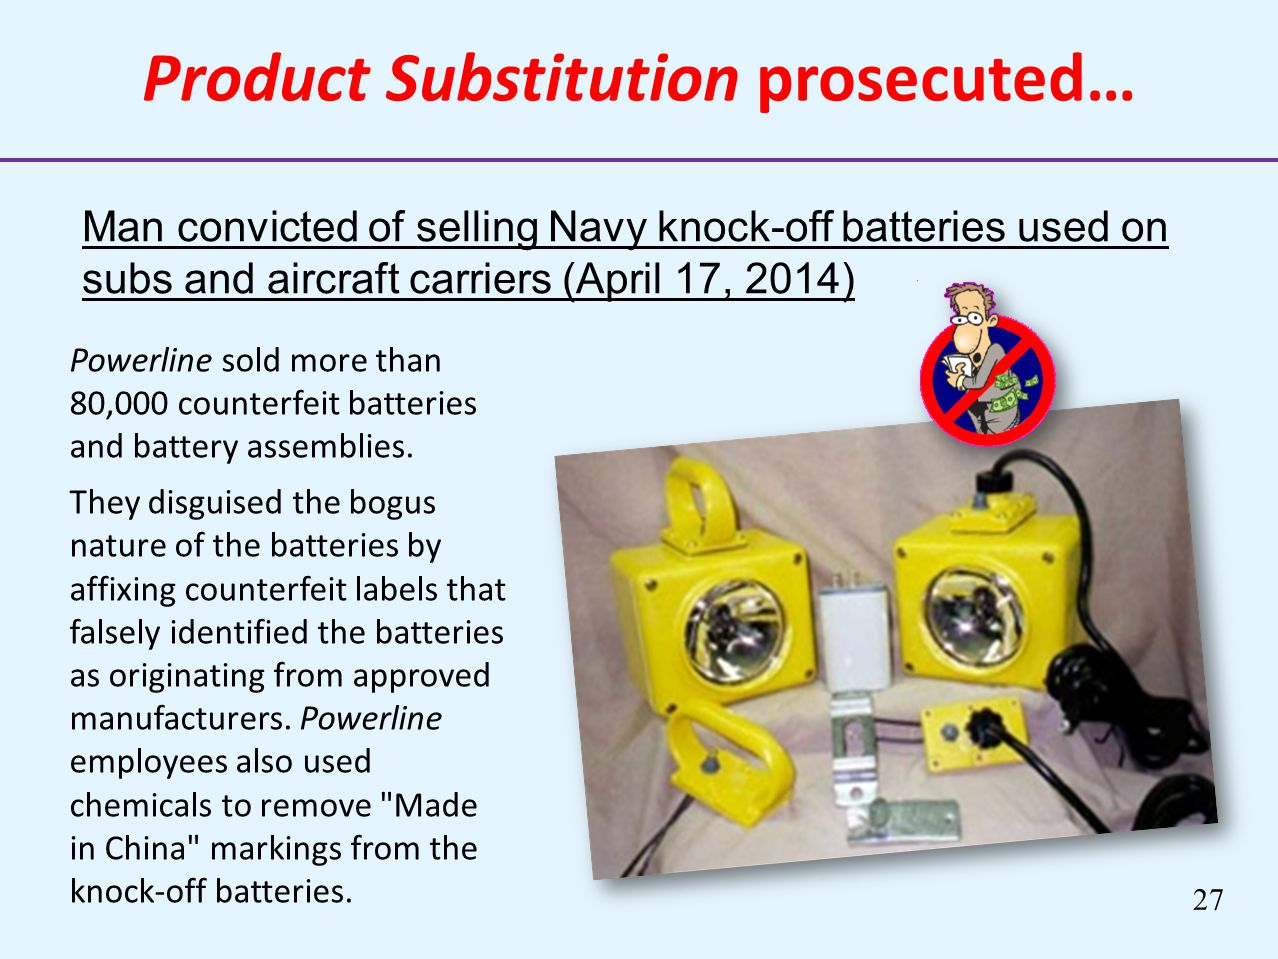 Product Substitution prosecuted… Powerline sold more than 80,000 counterfeit batteries and battery assemblies. They disguised the bogus nature of the